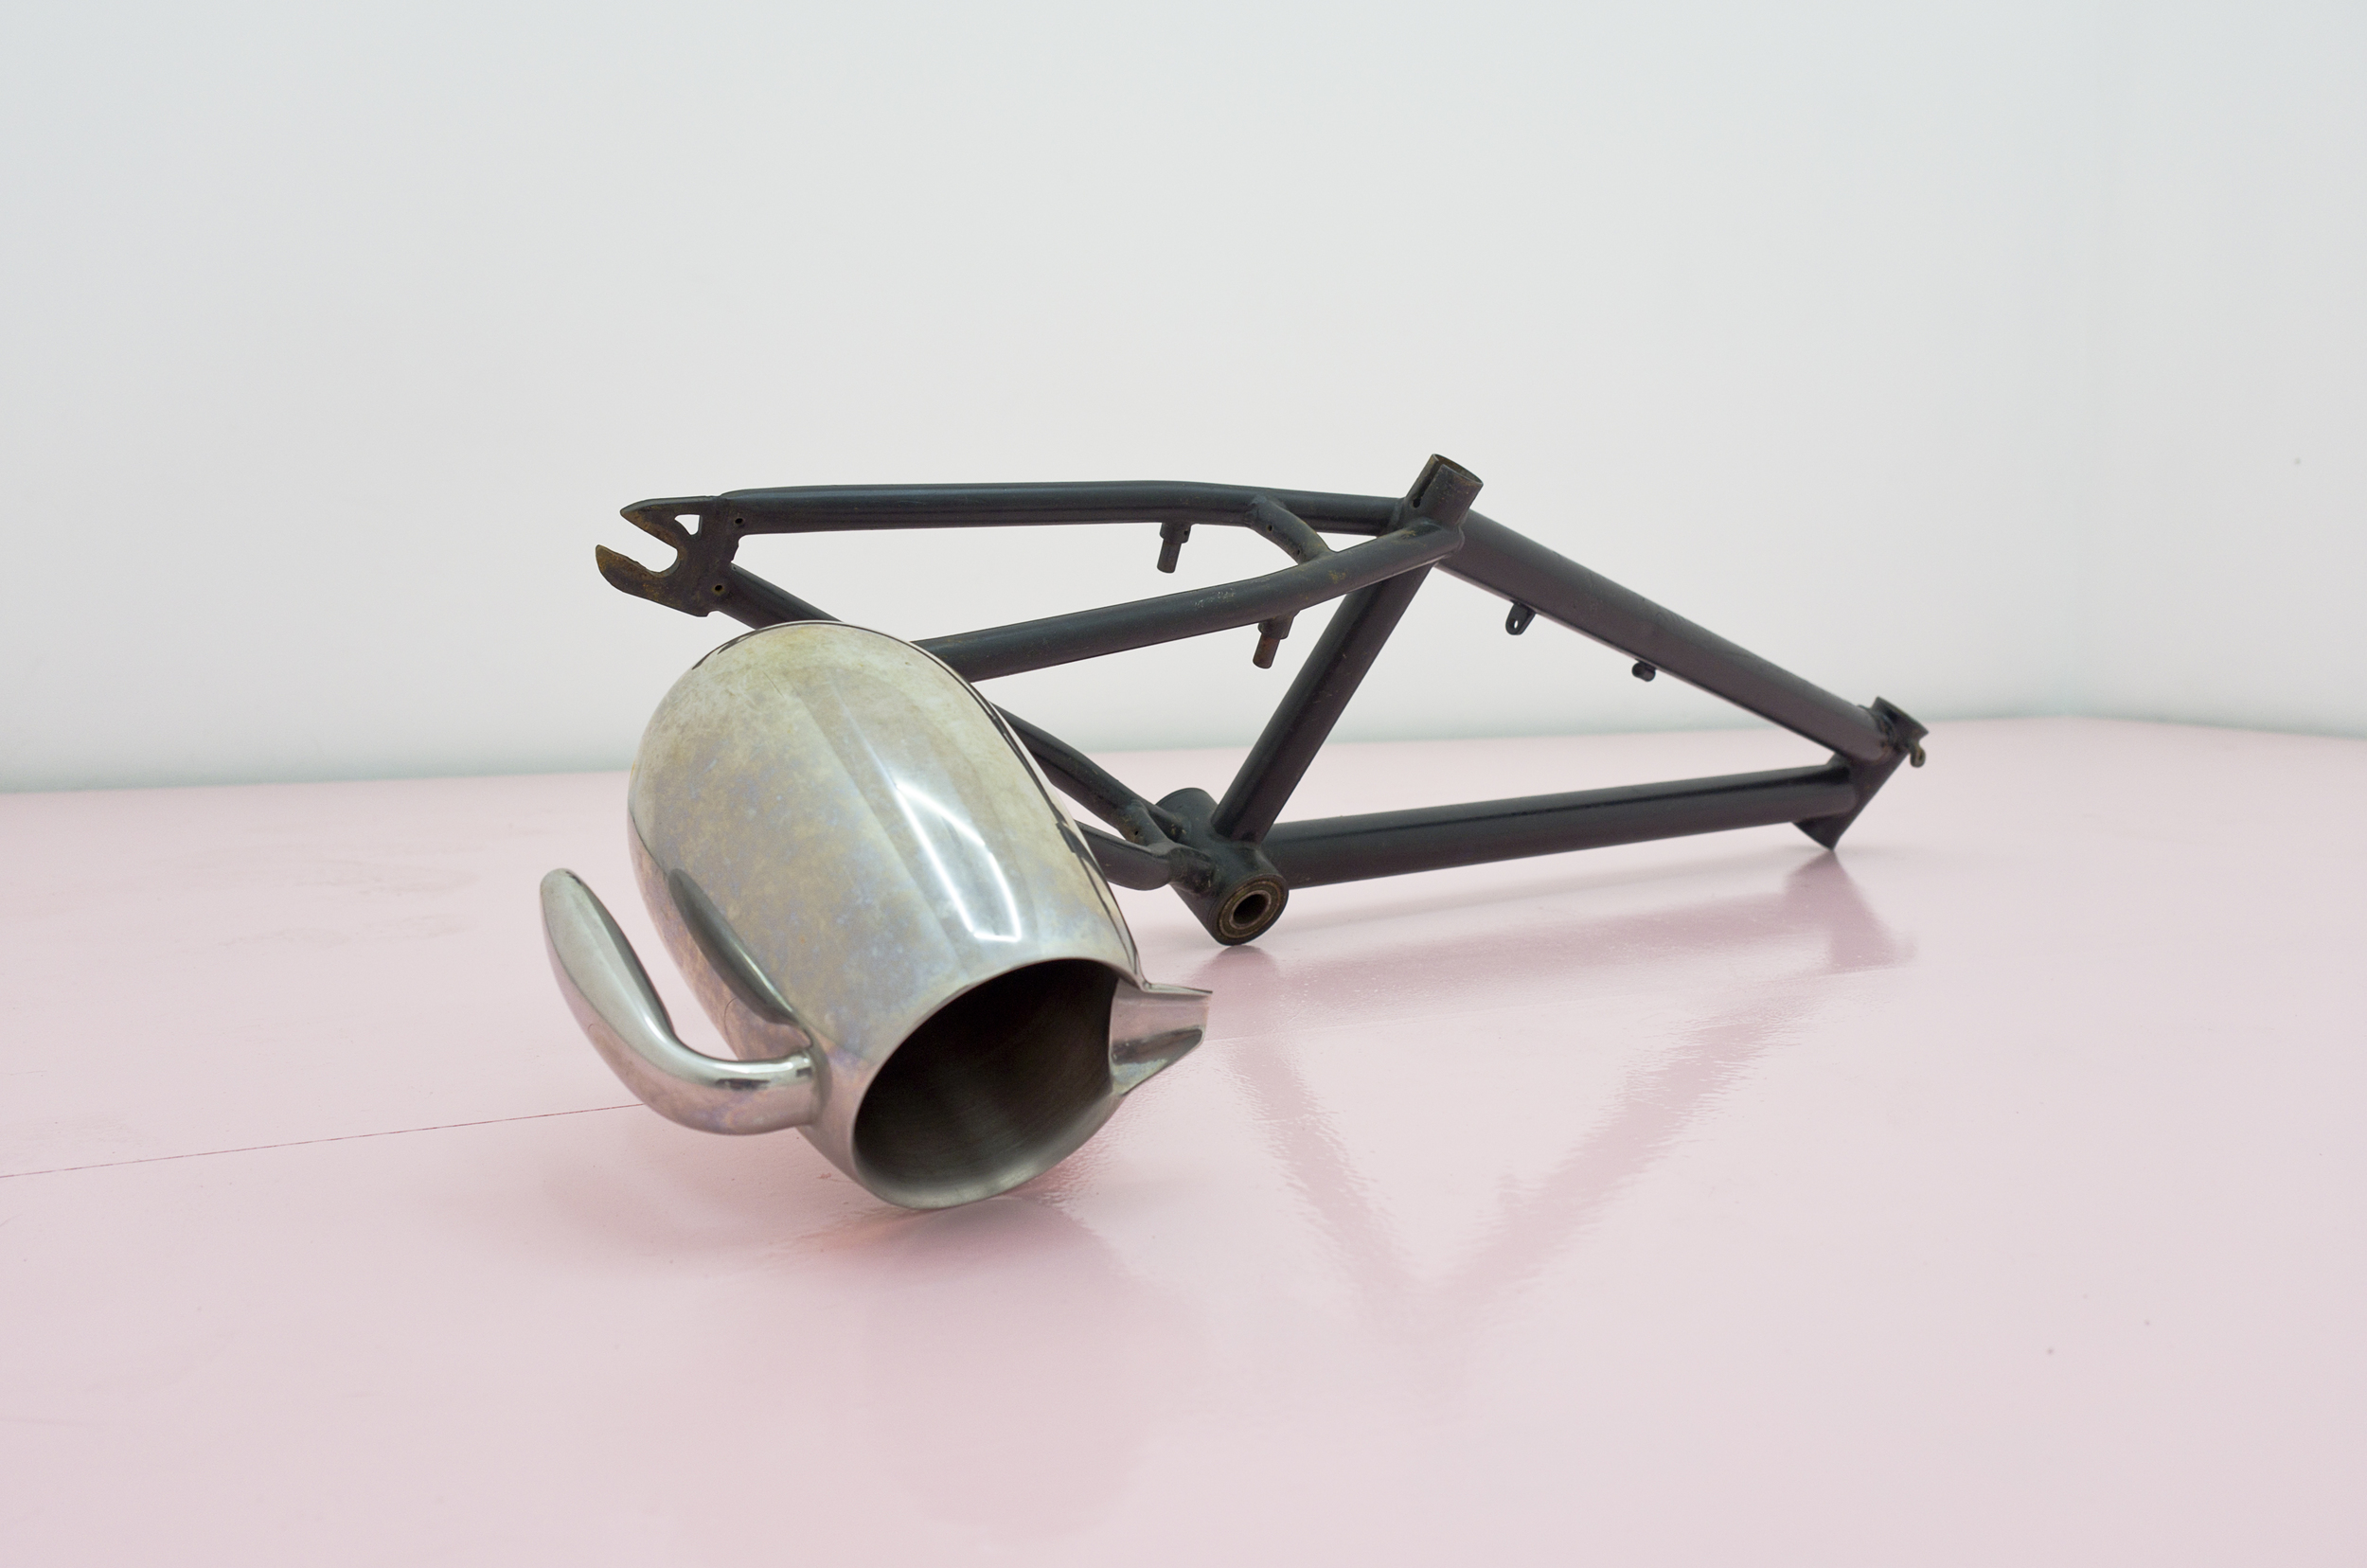 Michael E. Smith,  Untitled , 2014. BMX bike frame, water pitcher. 38.6 x 12.6 x 10.2 inches (8 x 32 x 26 cms)